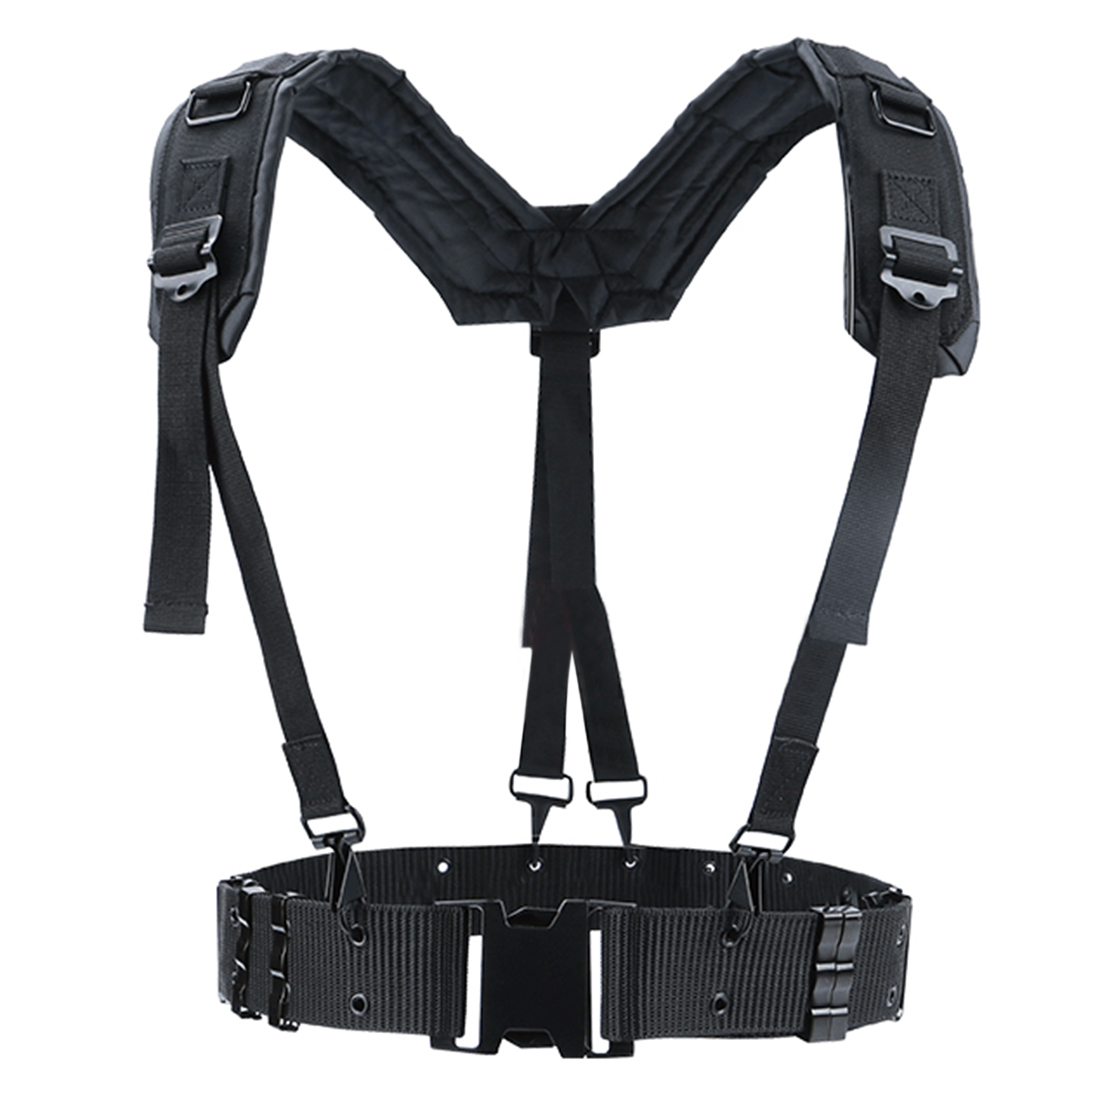 HTB1MyNqa6nuK1RkSmFPq6AuzFXa1 - HS Adjustable Tactical Lightweight Waist Belt Harness Set for Outdoor Military Shoulder Waist Protective Band for Adult